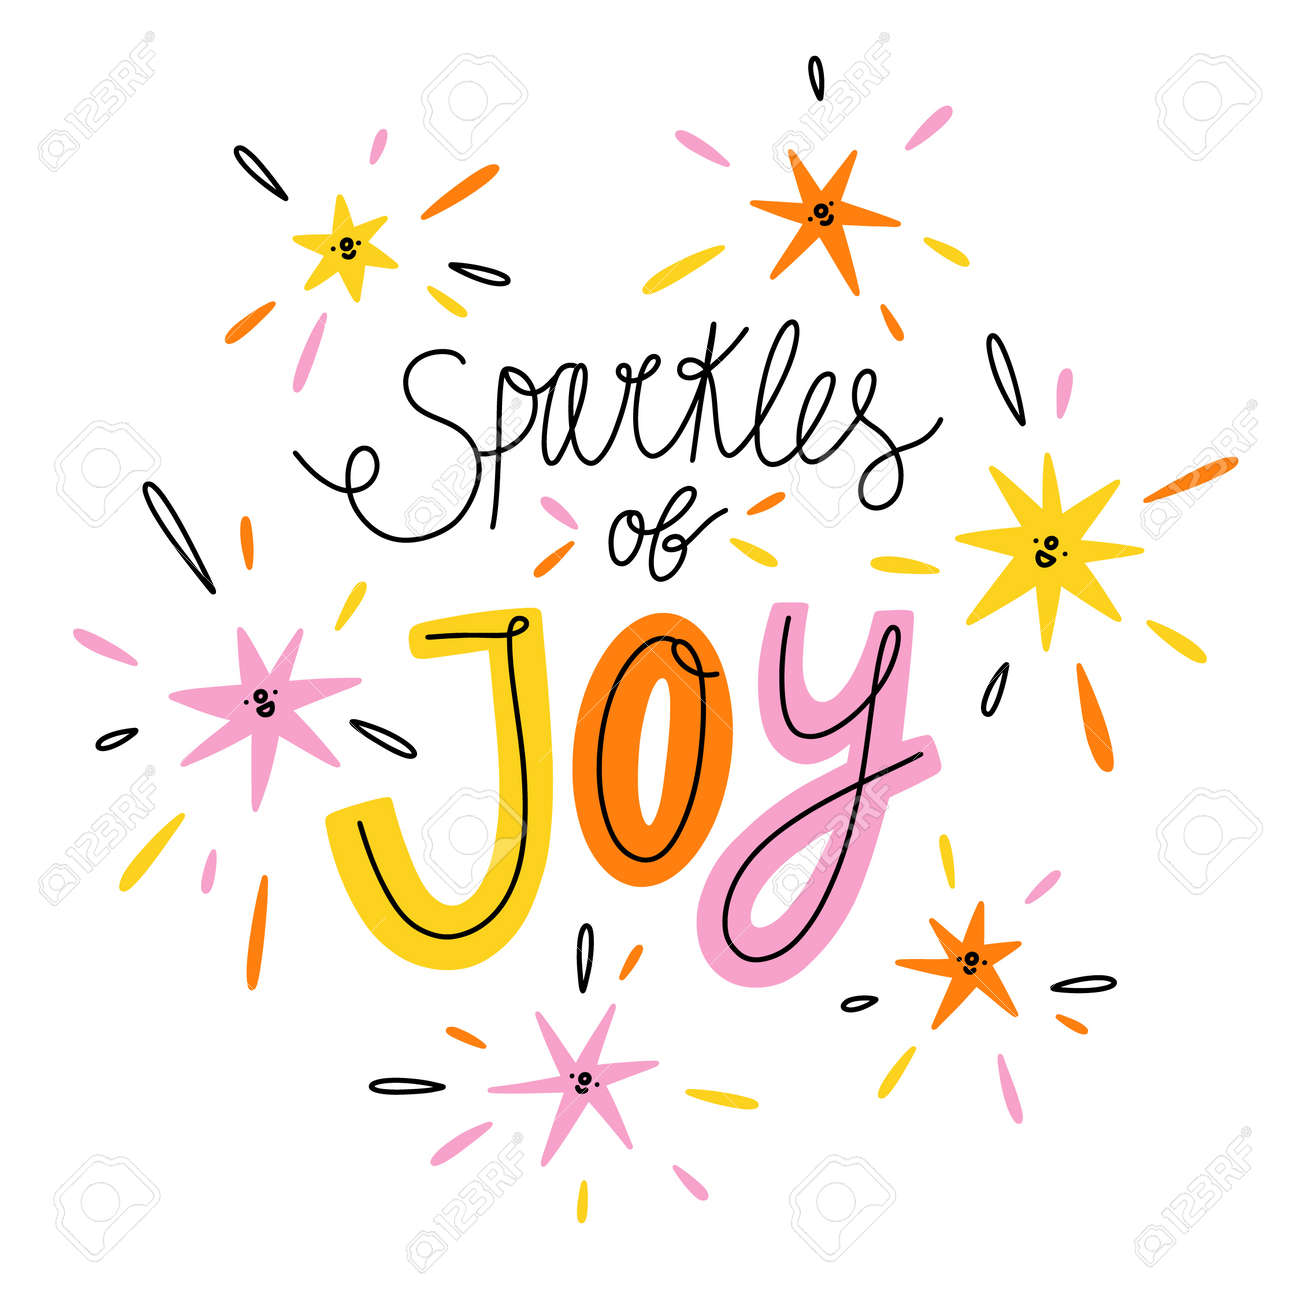 Sparkles of joy, colorful vector lettering illustration isolated on white background - 163258147